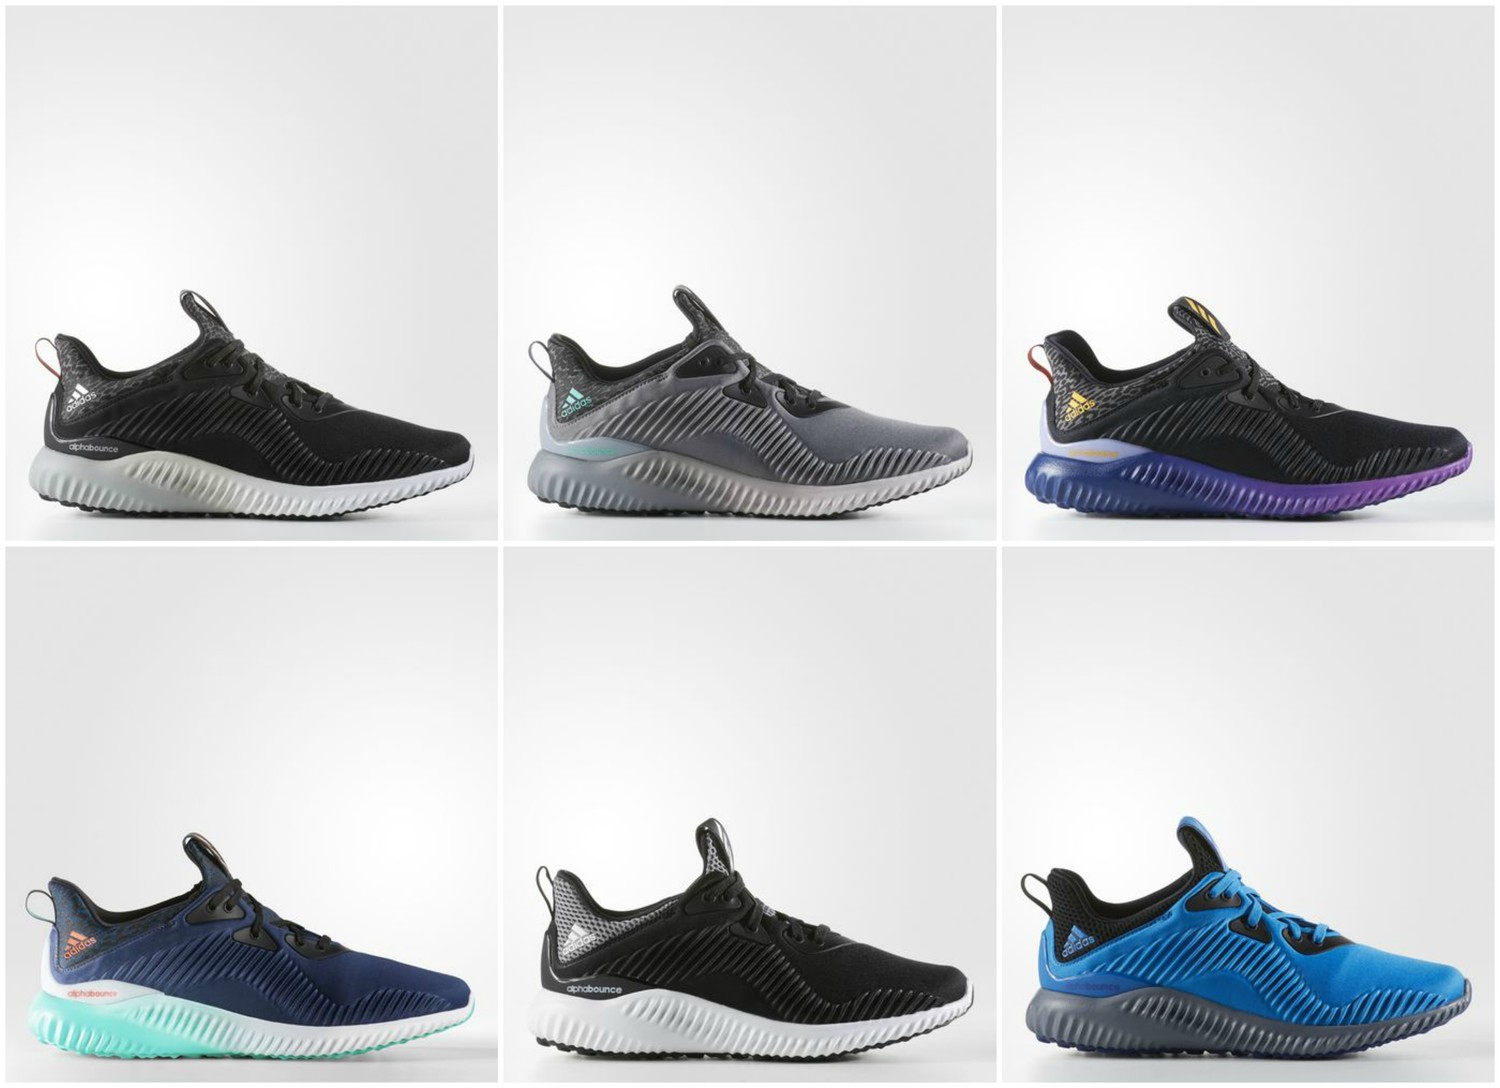 27bc901f9a094 ... The Adidas AlphaBounce Arrived in More Colorways — Sneaker Shouts ...